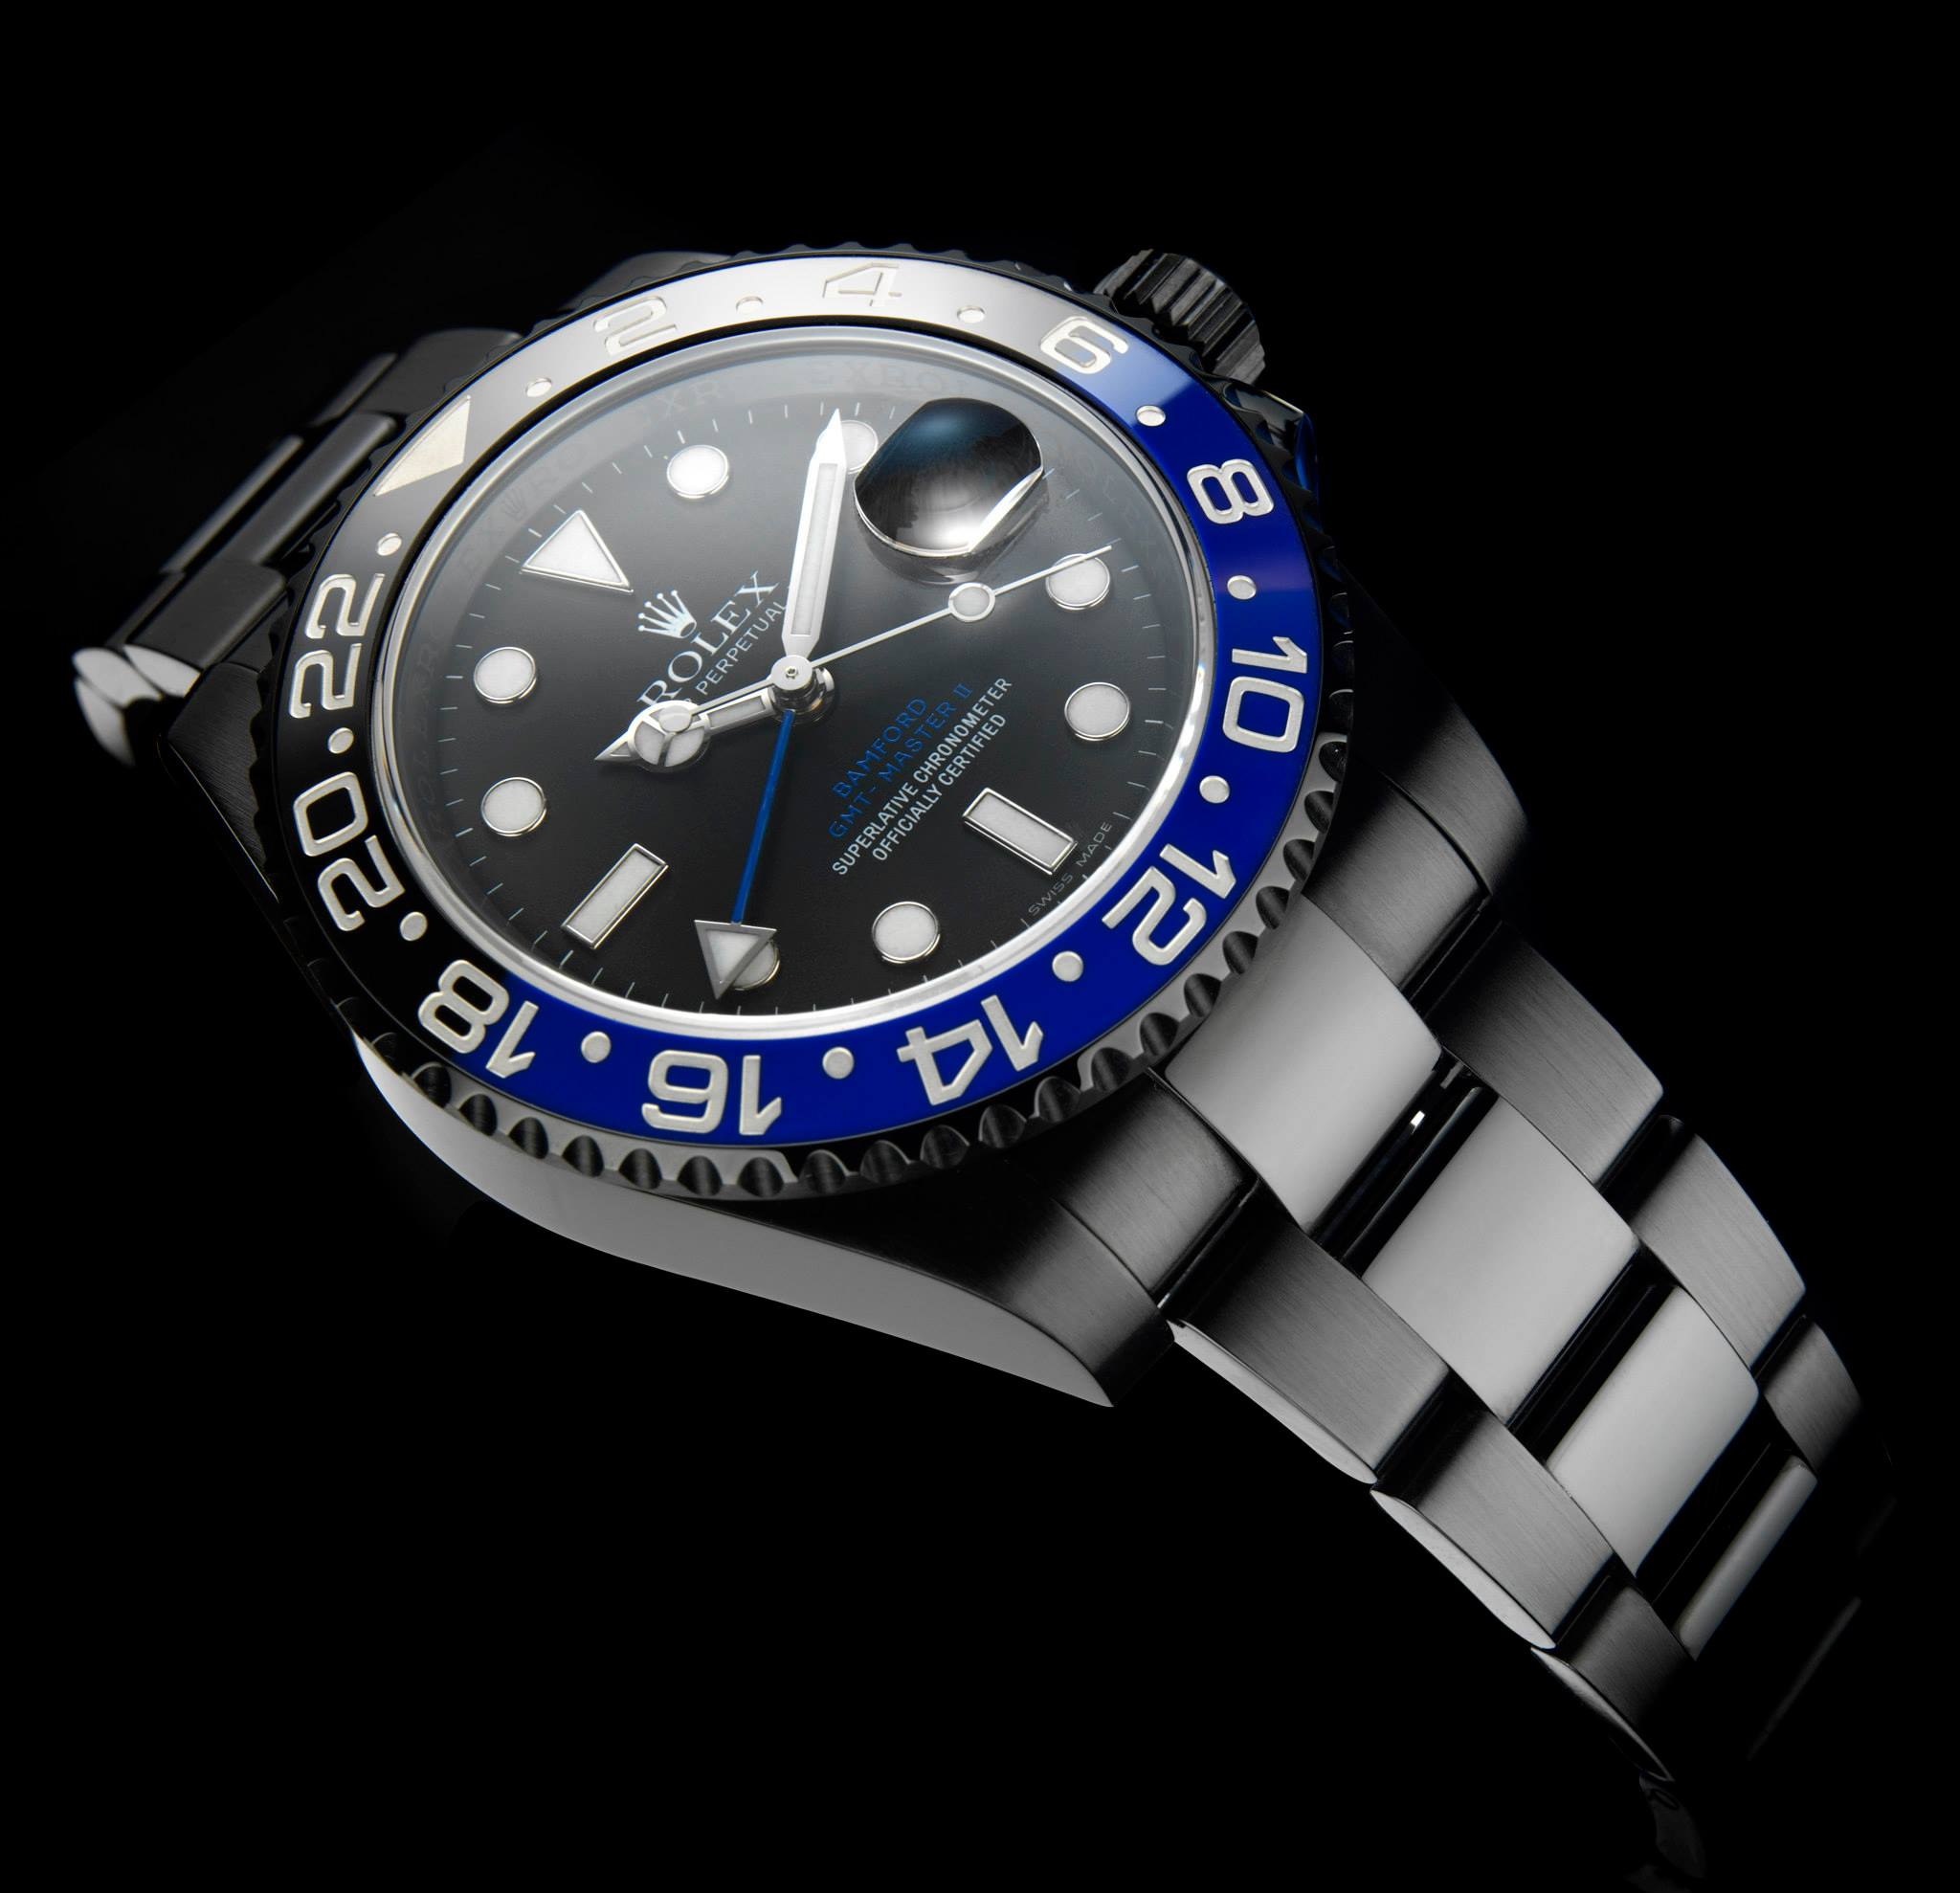 Rolex GMT-Master II Replica Watches